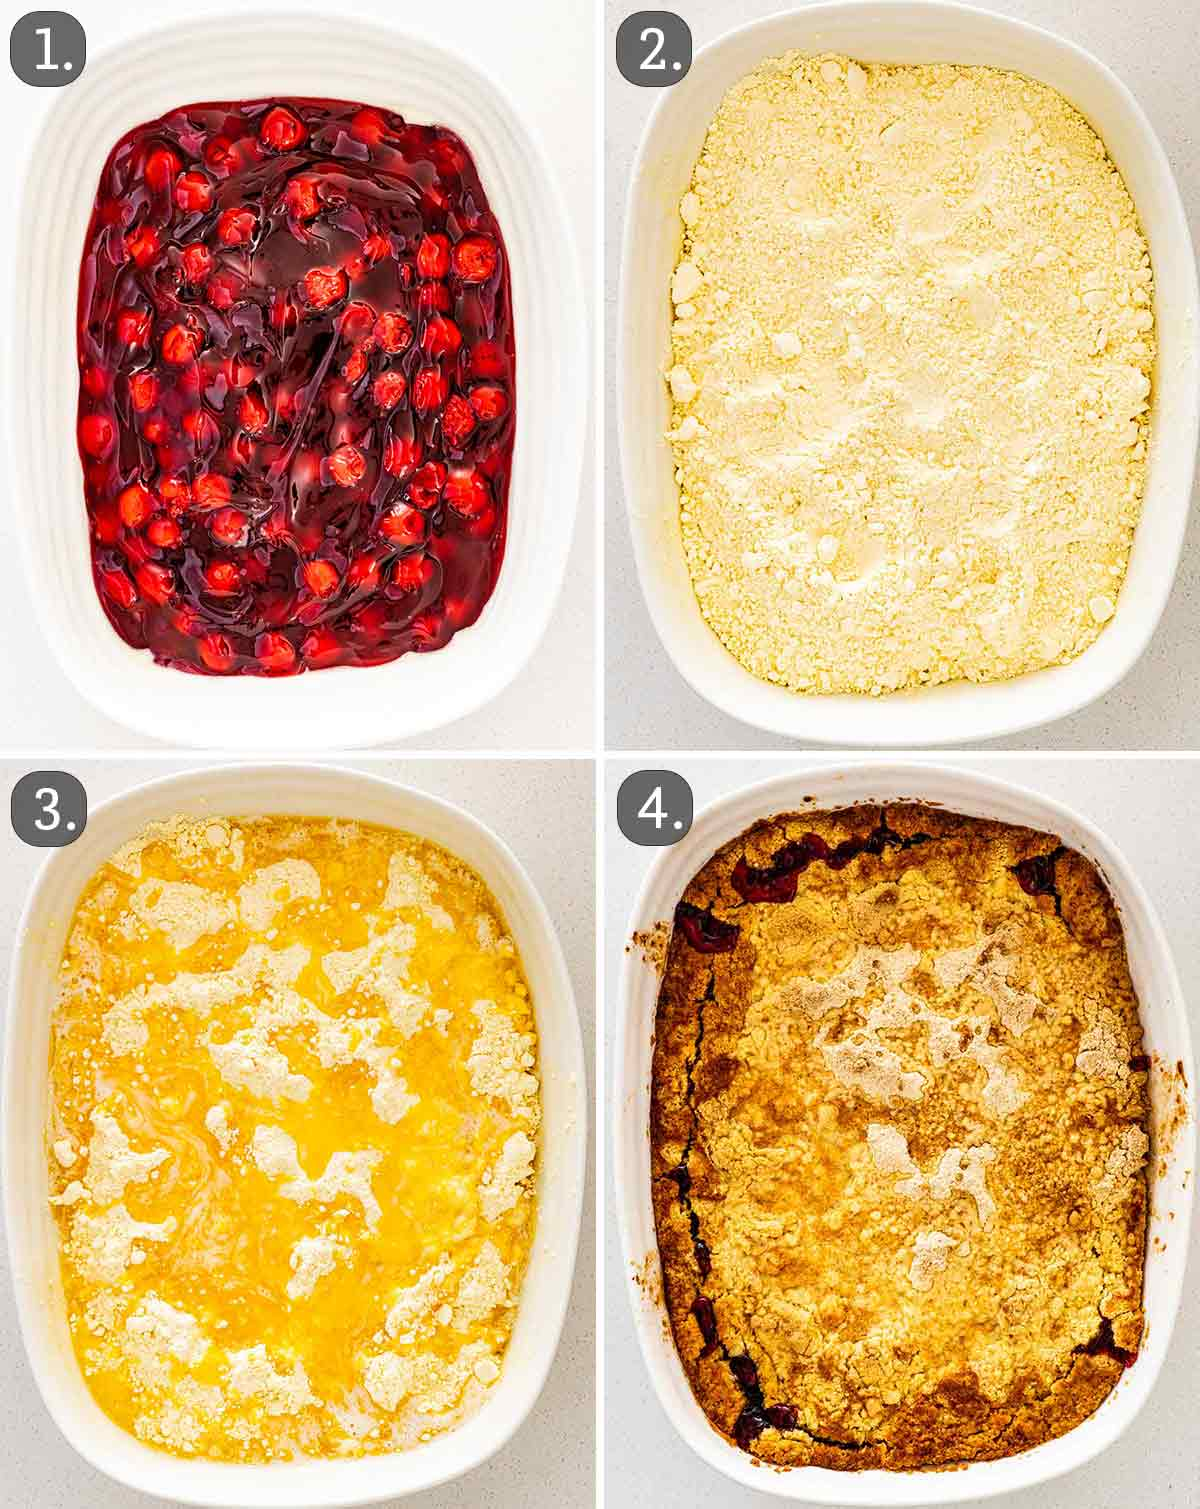 process shots showing how to make cherry dump cake.